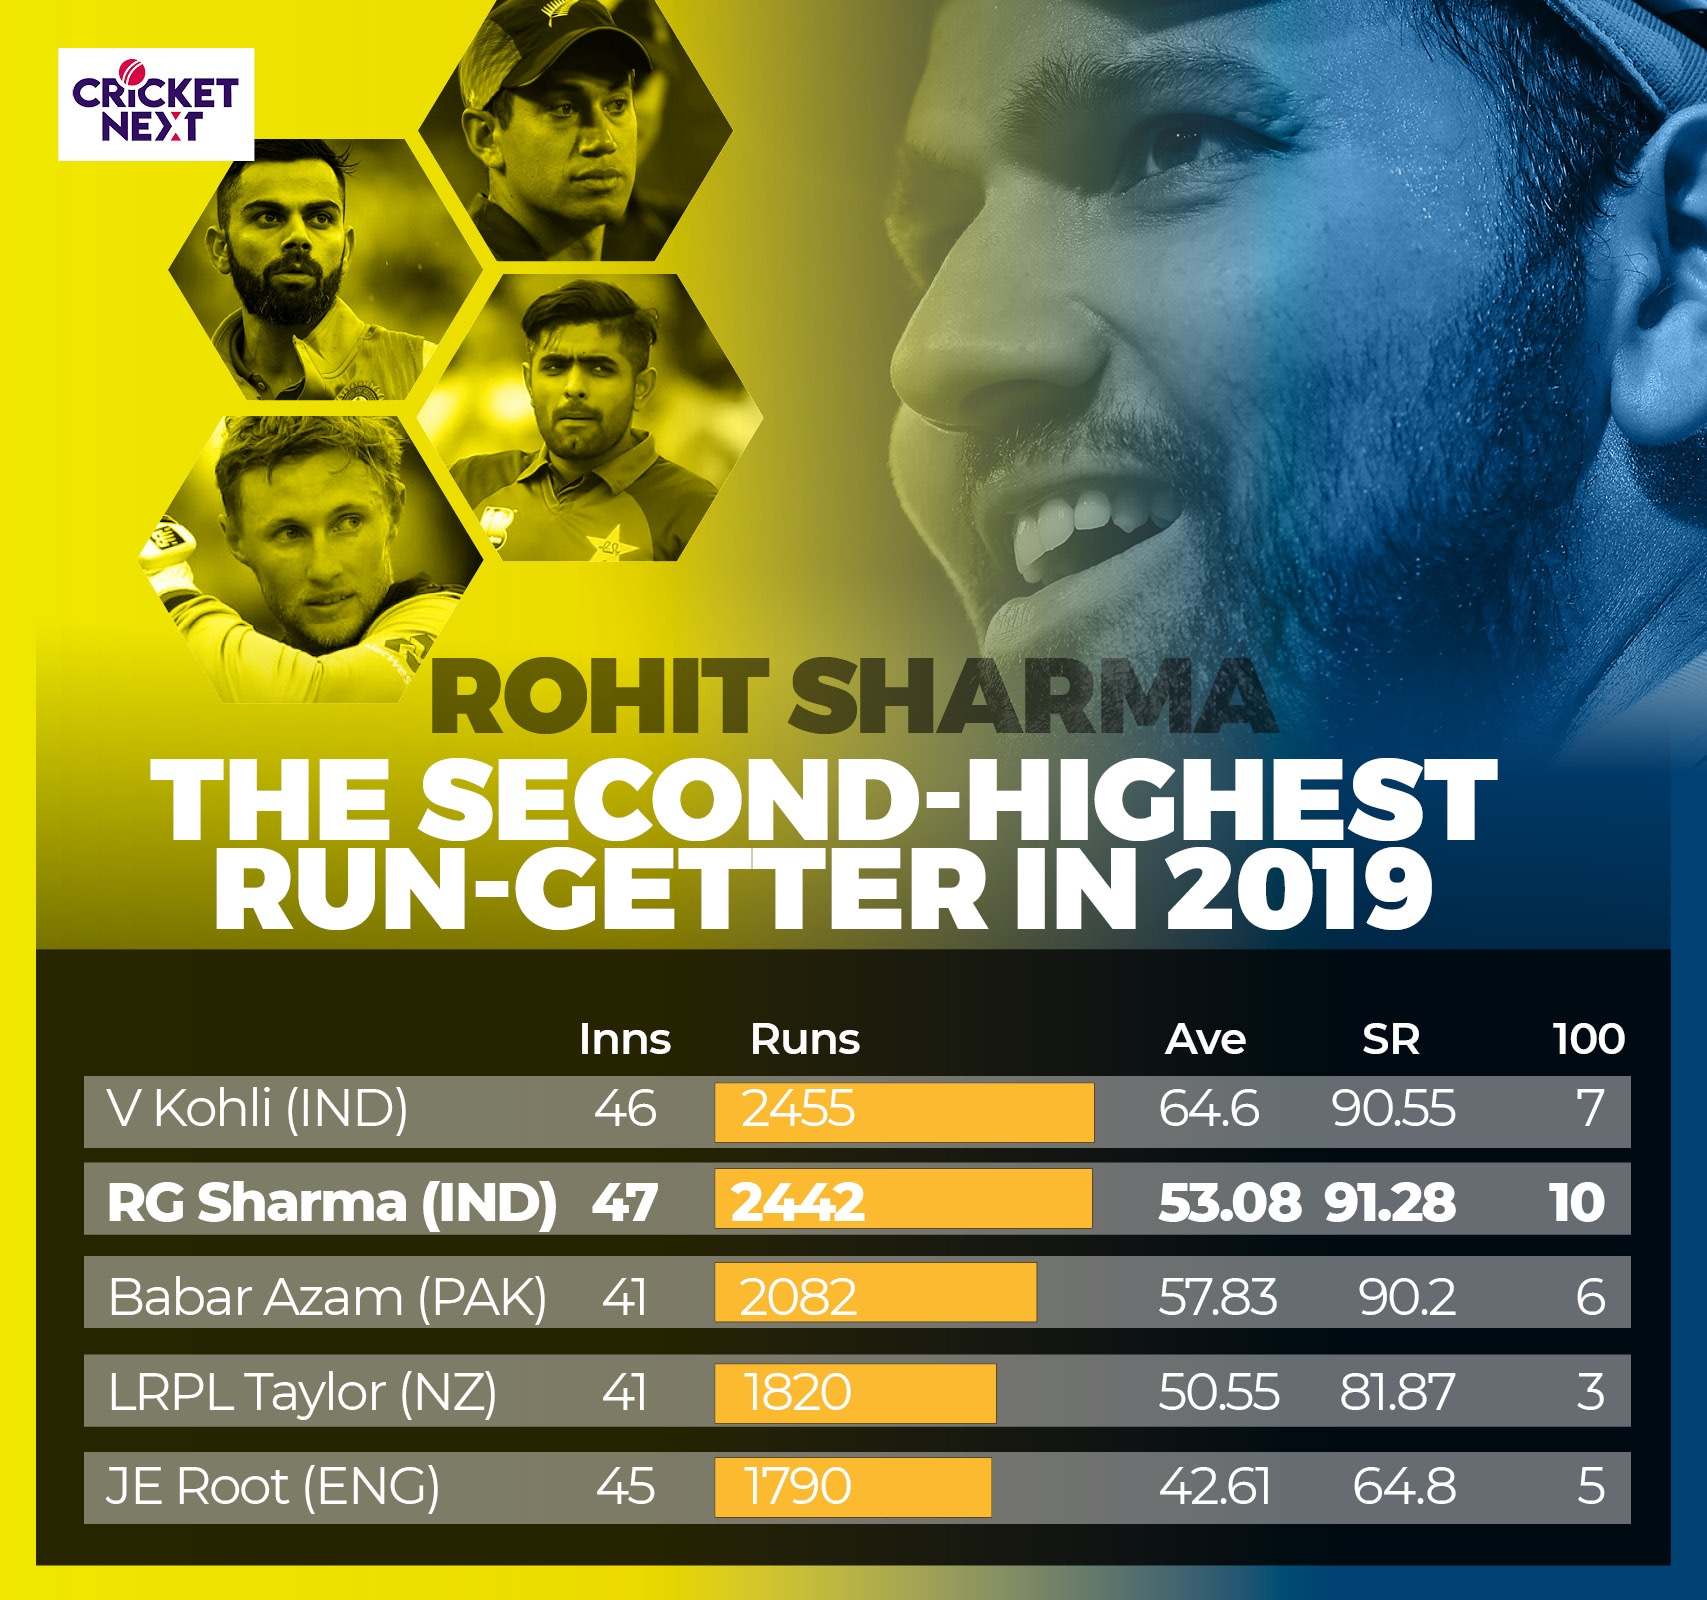 Rohit Sharma in 2019